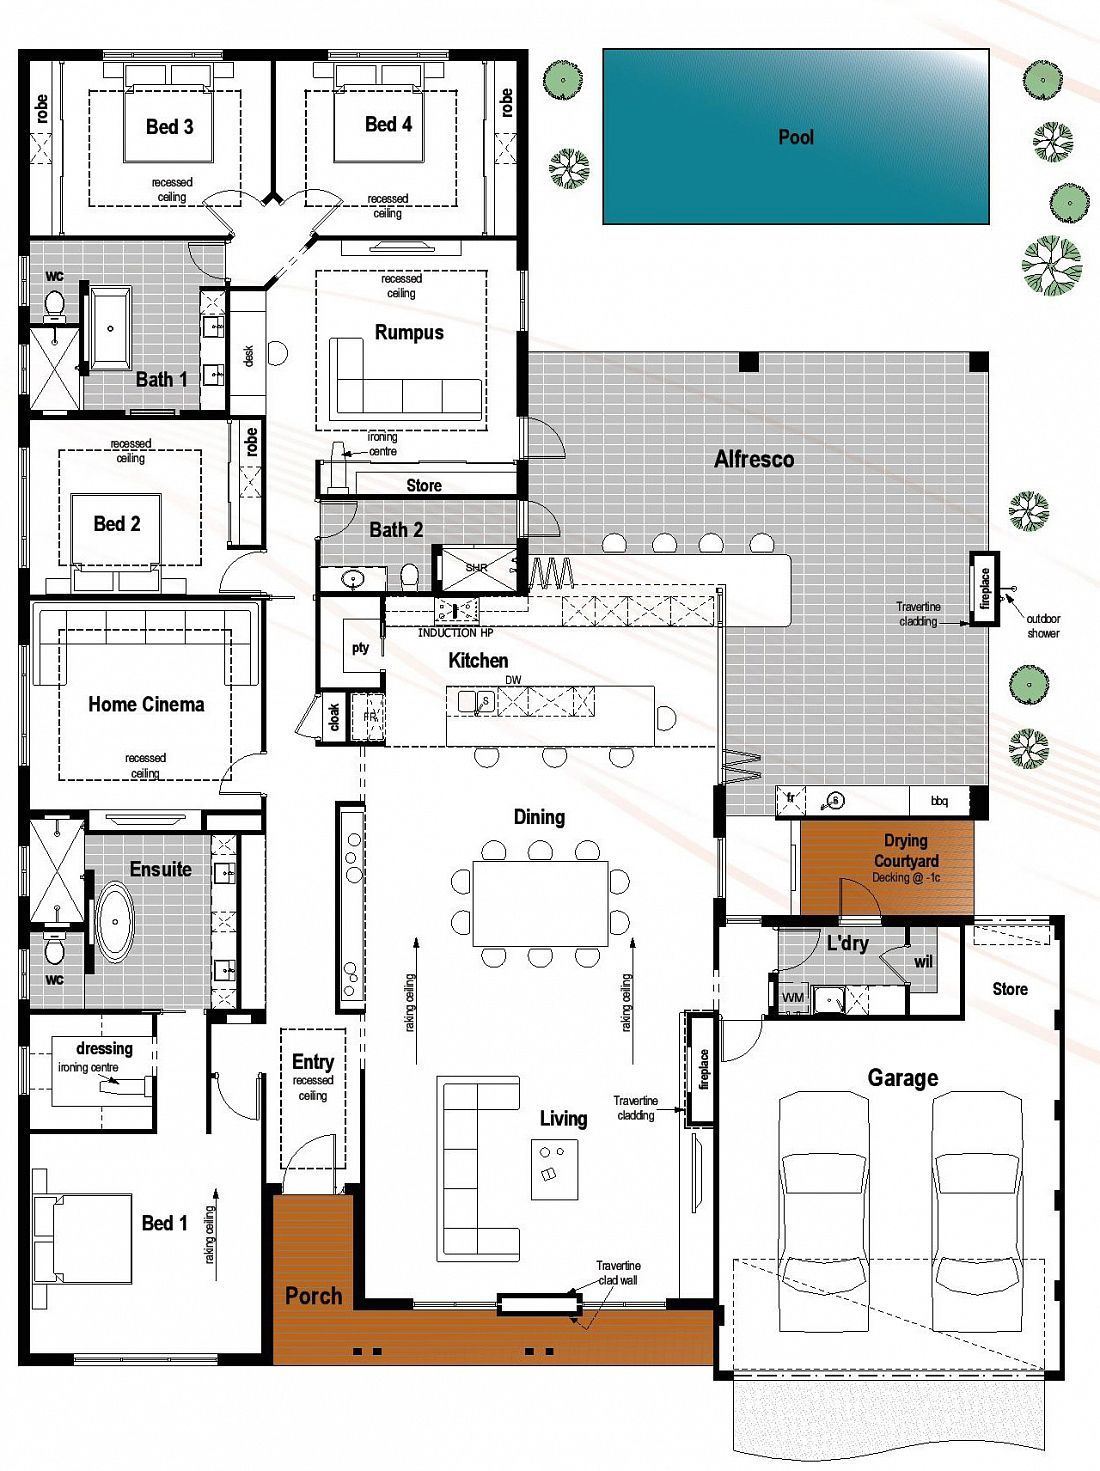 Best Of Large Modern House Floor Plans And Description In 2020 4 Bedroom House Plans House Plans Floor Plans